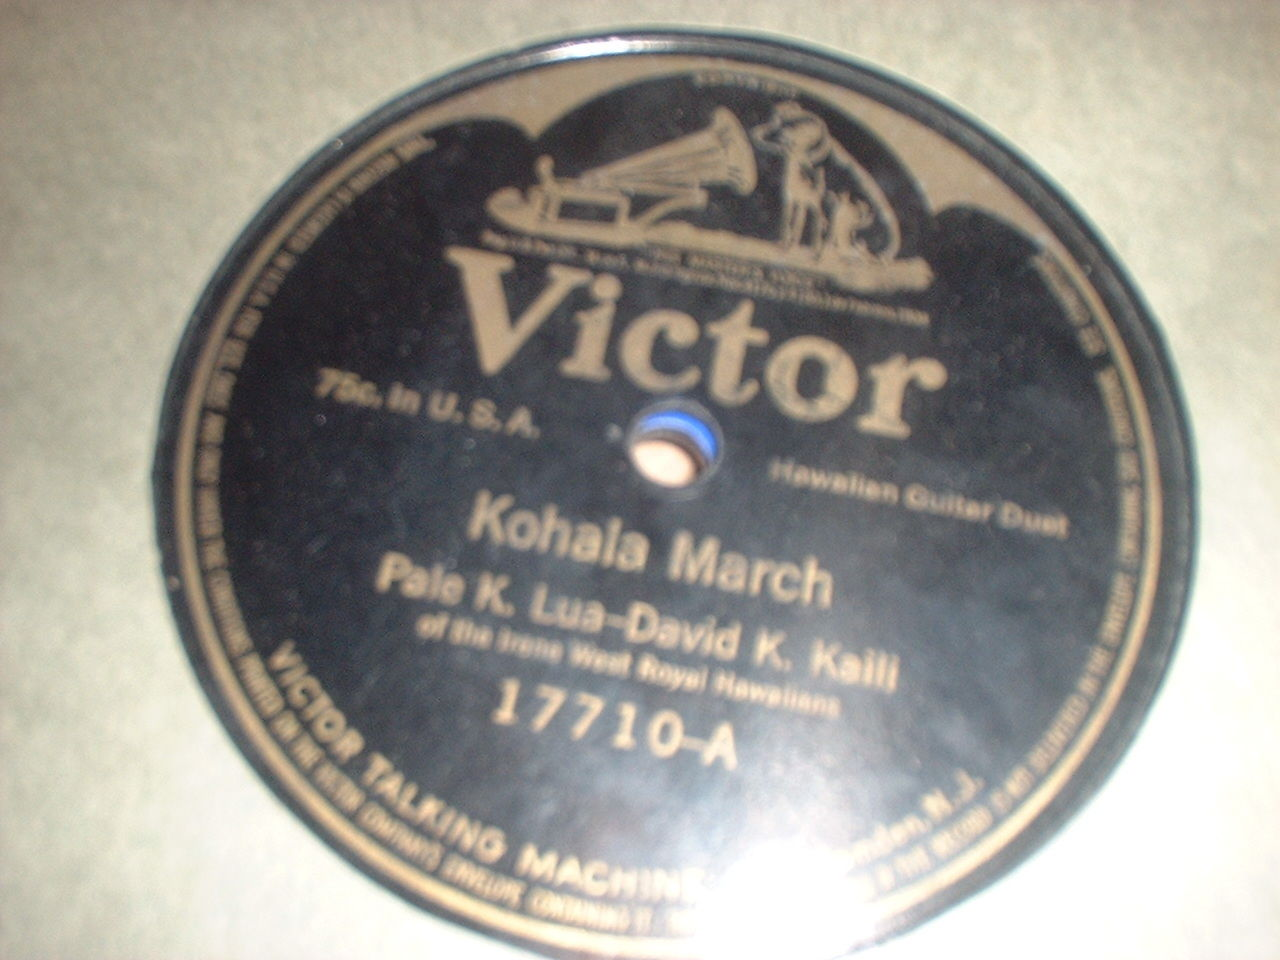 78RPM Victor 17710 Pale K. Lua – David K. Kaili, Honolulu March / Kohala March V